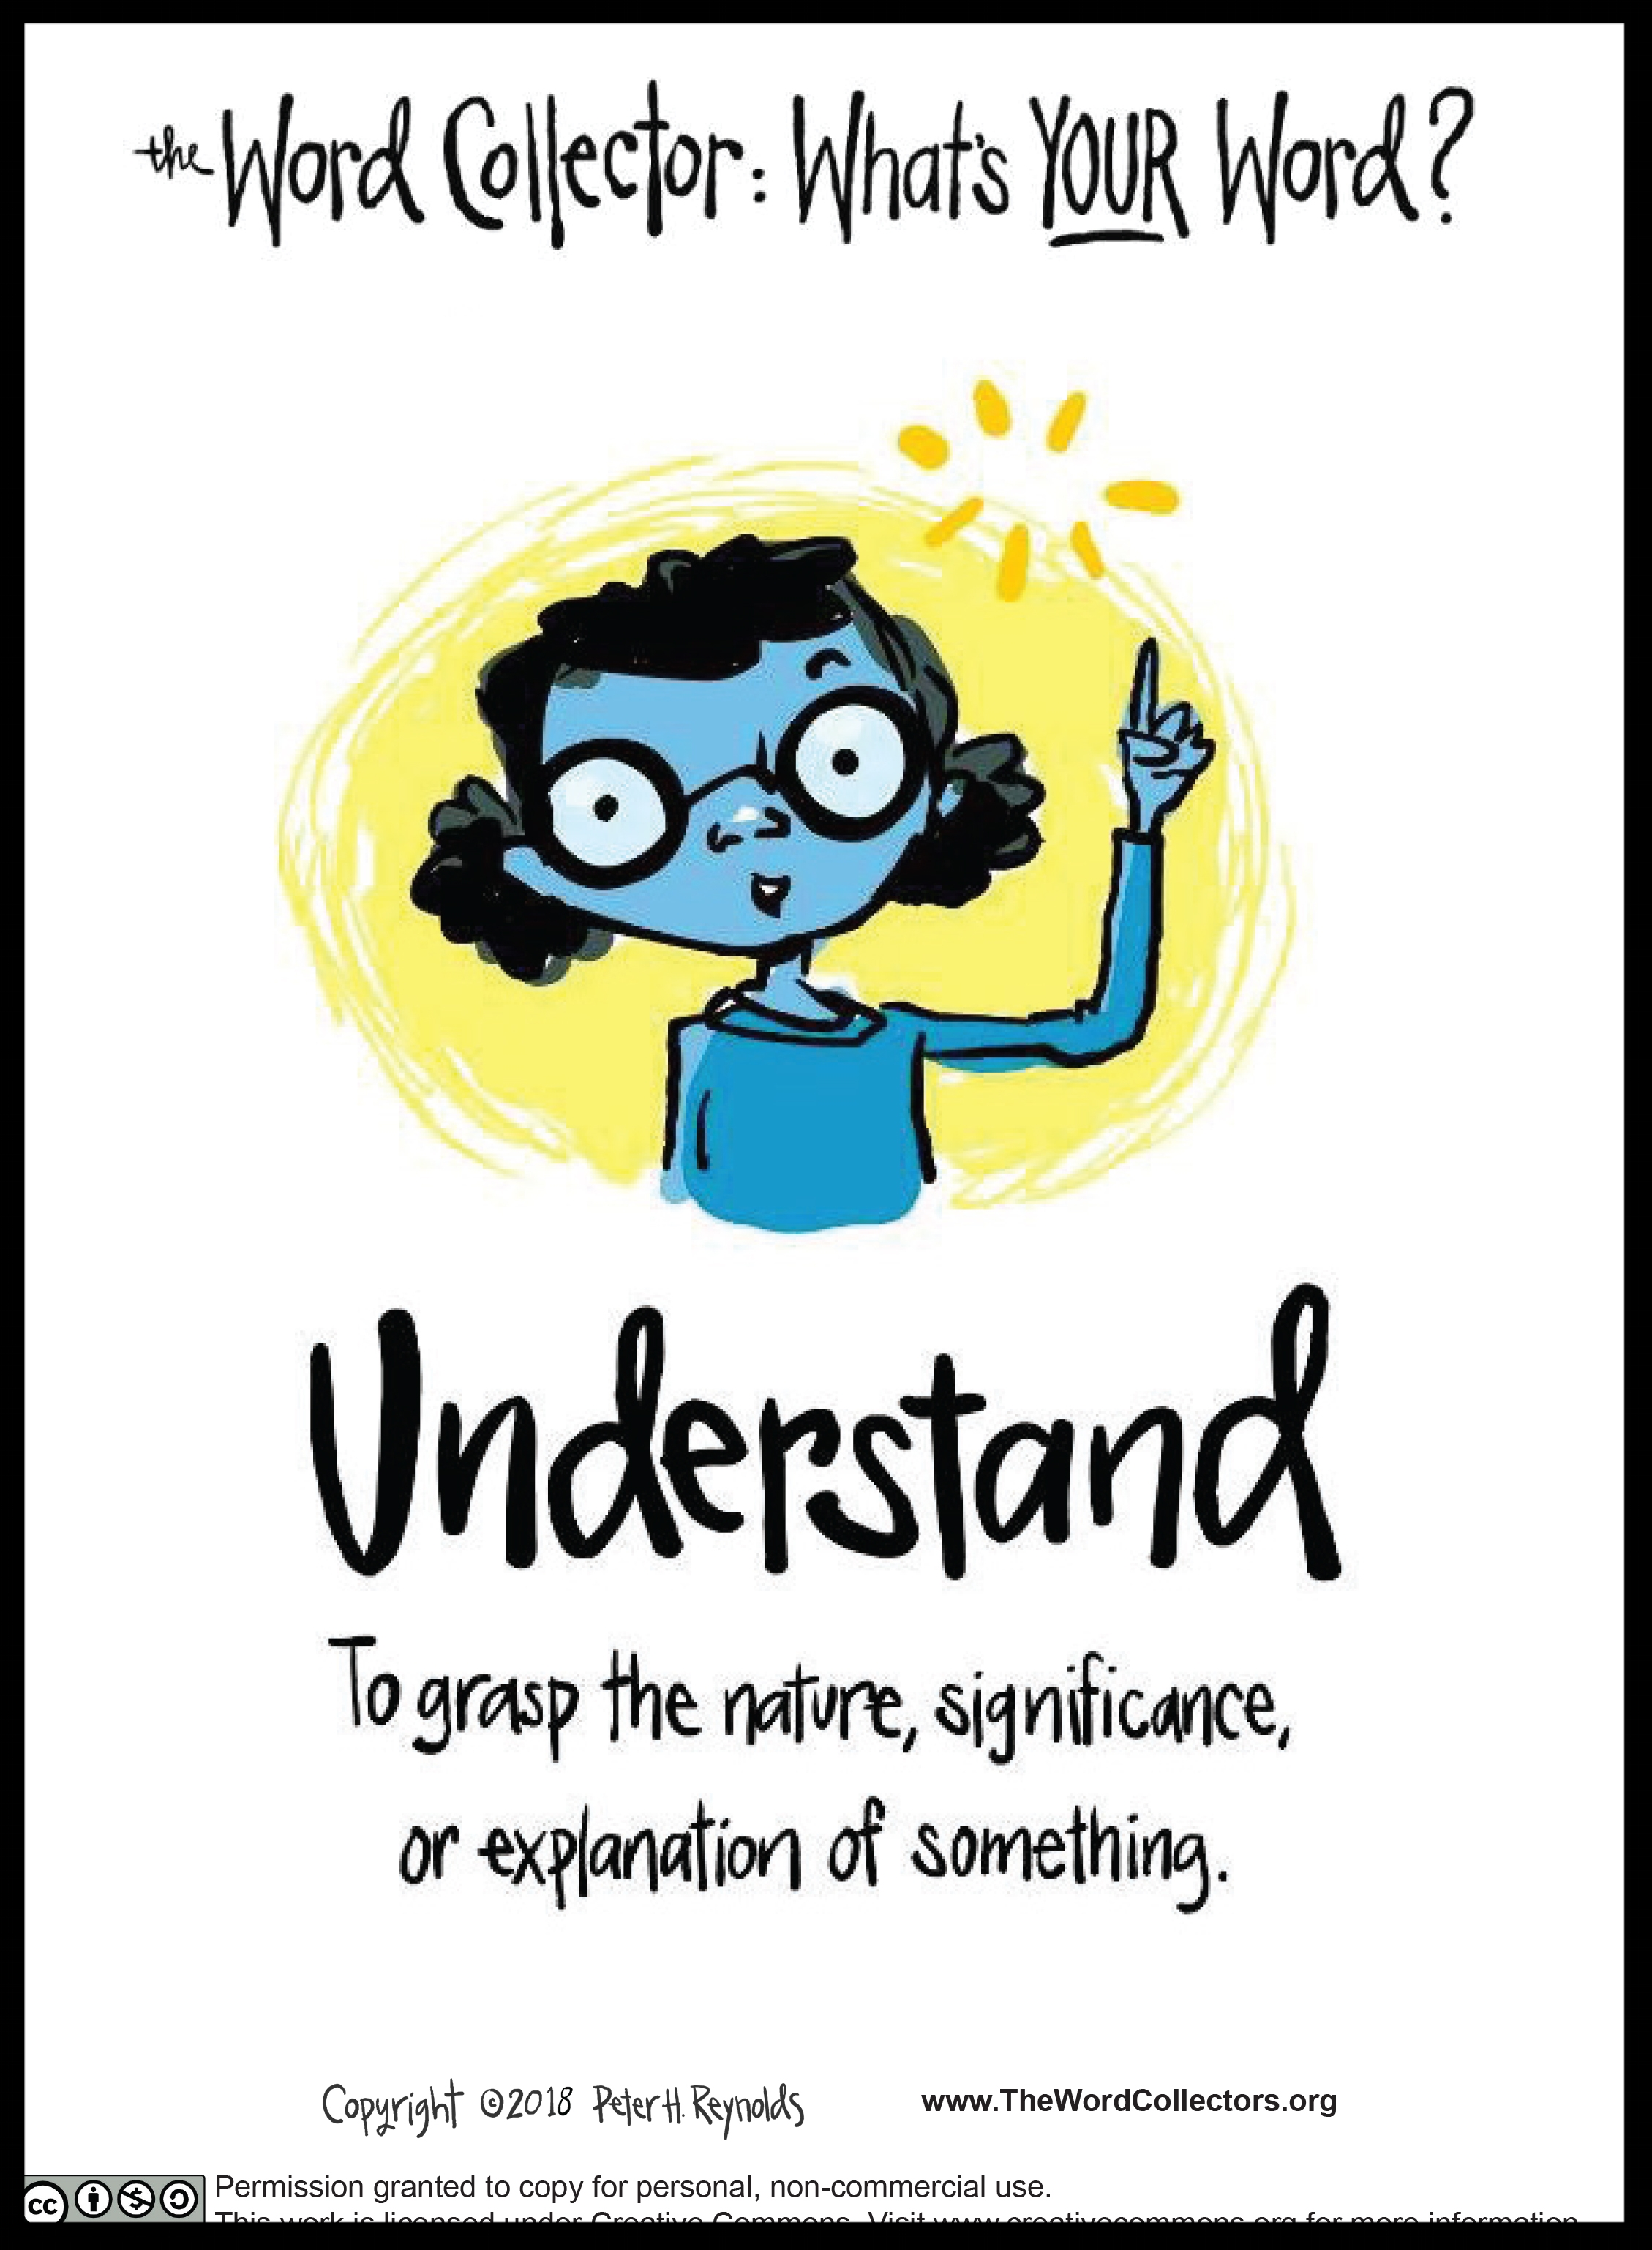 WordCollector_Poster-Understand.jpg